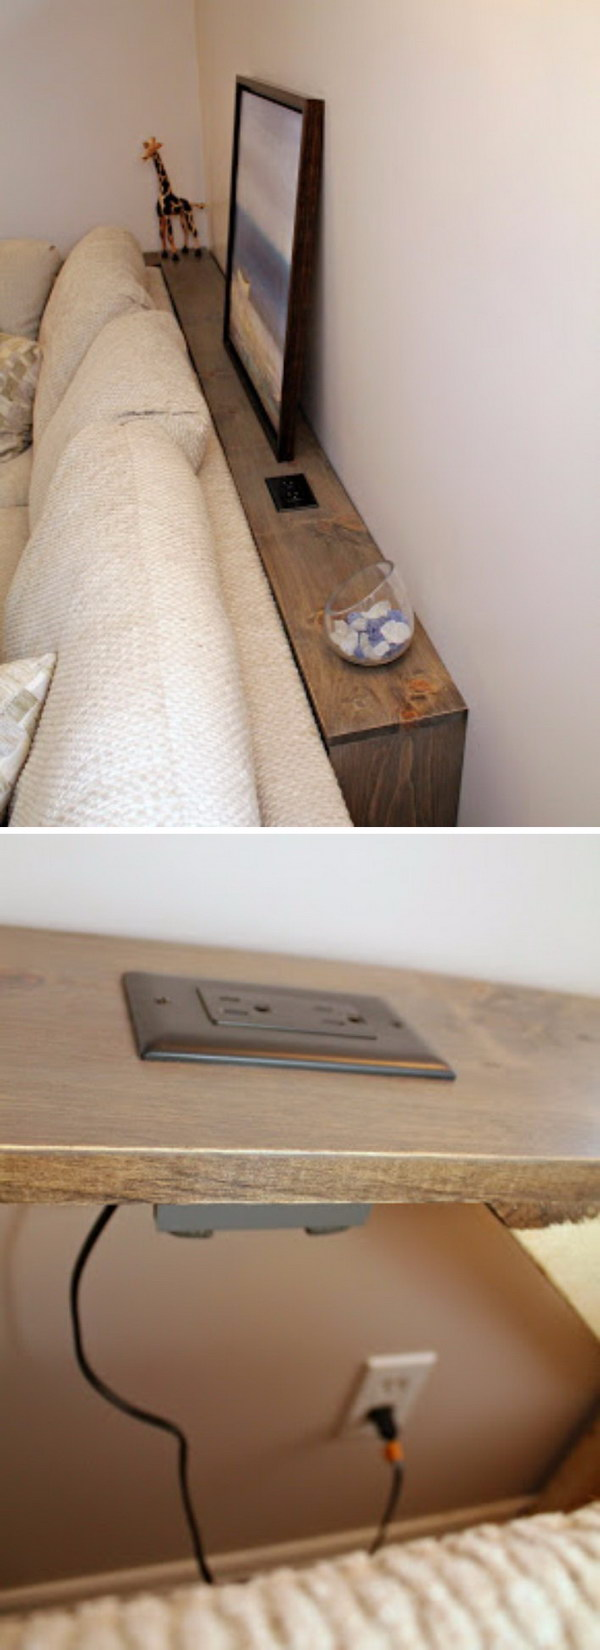 This Little Diy Wooden Table Behind The Sofa Which Is Very Easy And Accessible For Everyone To Make All About Functionality Its Strategic Placement